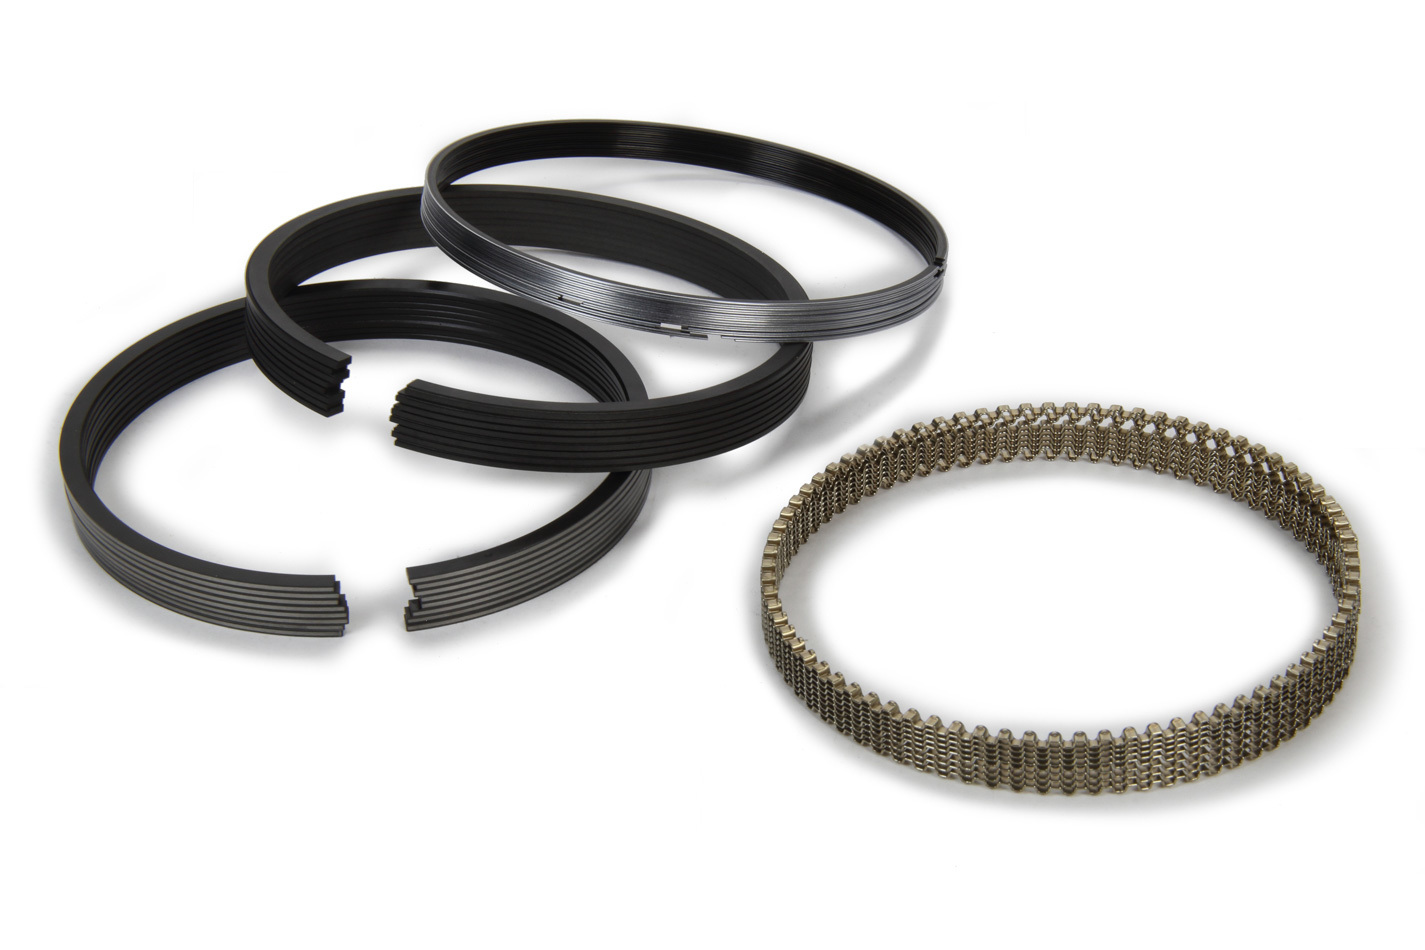 Hastings 2M5292 Piston Rings, 4.065 in Bore, File Fit, 1.5 x 1.5 x 2.5 mm Thick, Standard Tension, Chrome / Moly, 8 Cylinder, Kit